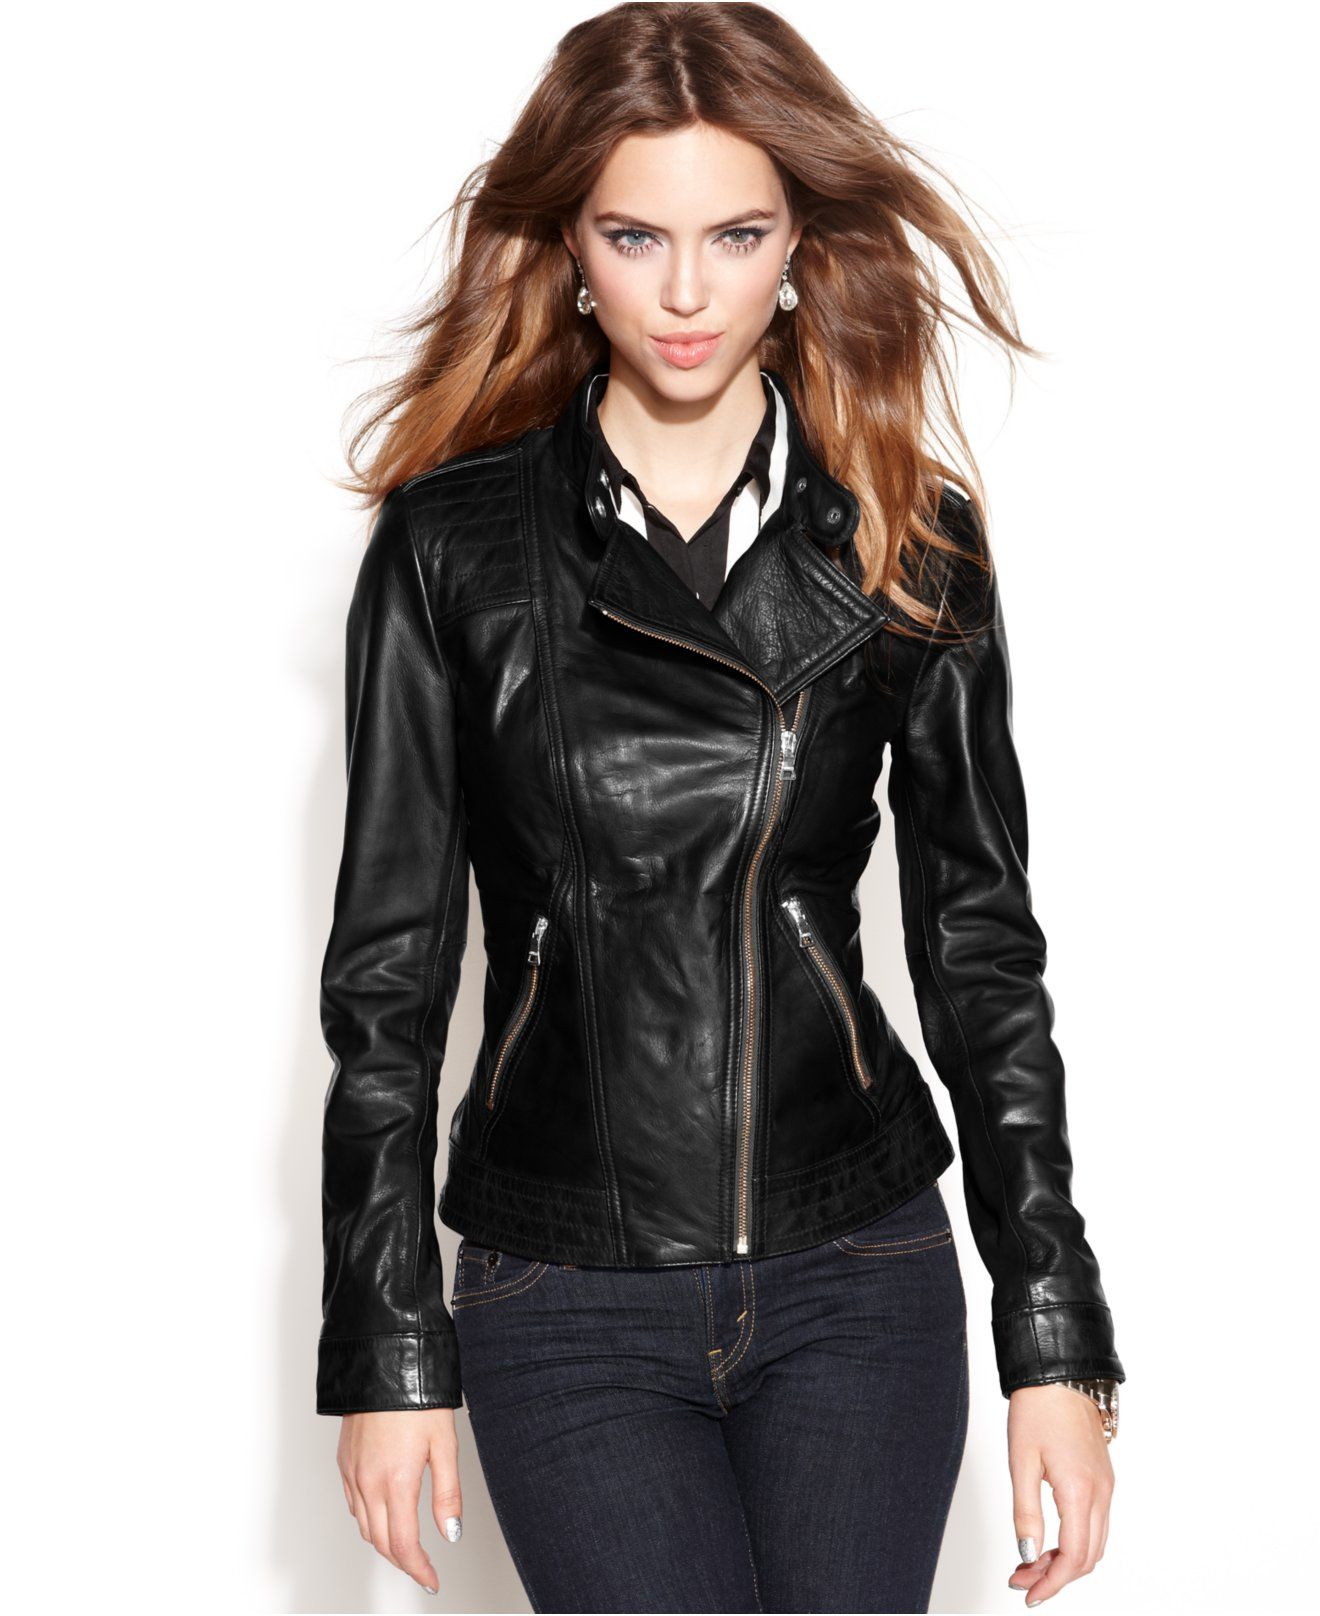 655238bf3bbe6 GUESS Asymmetrical Zip-Front Leather Jacket - Jackets   Blazers - Women -  Macy s  226.99